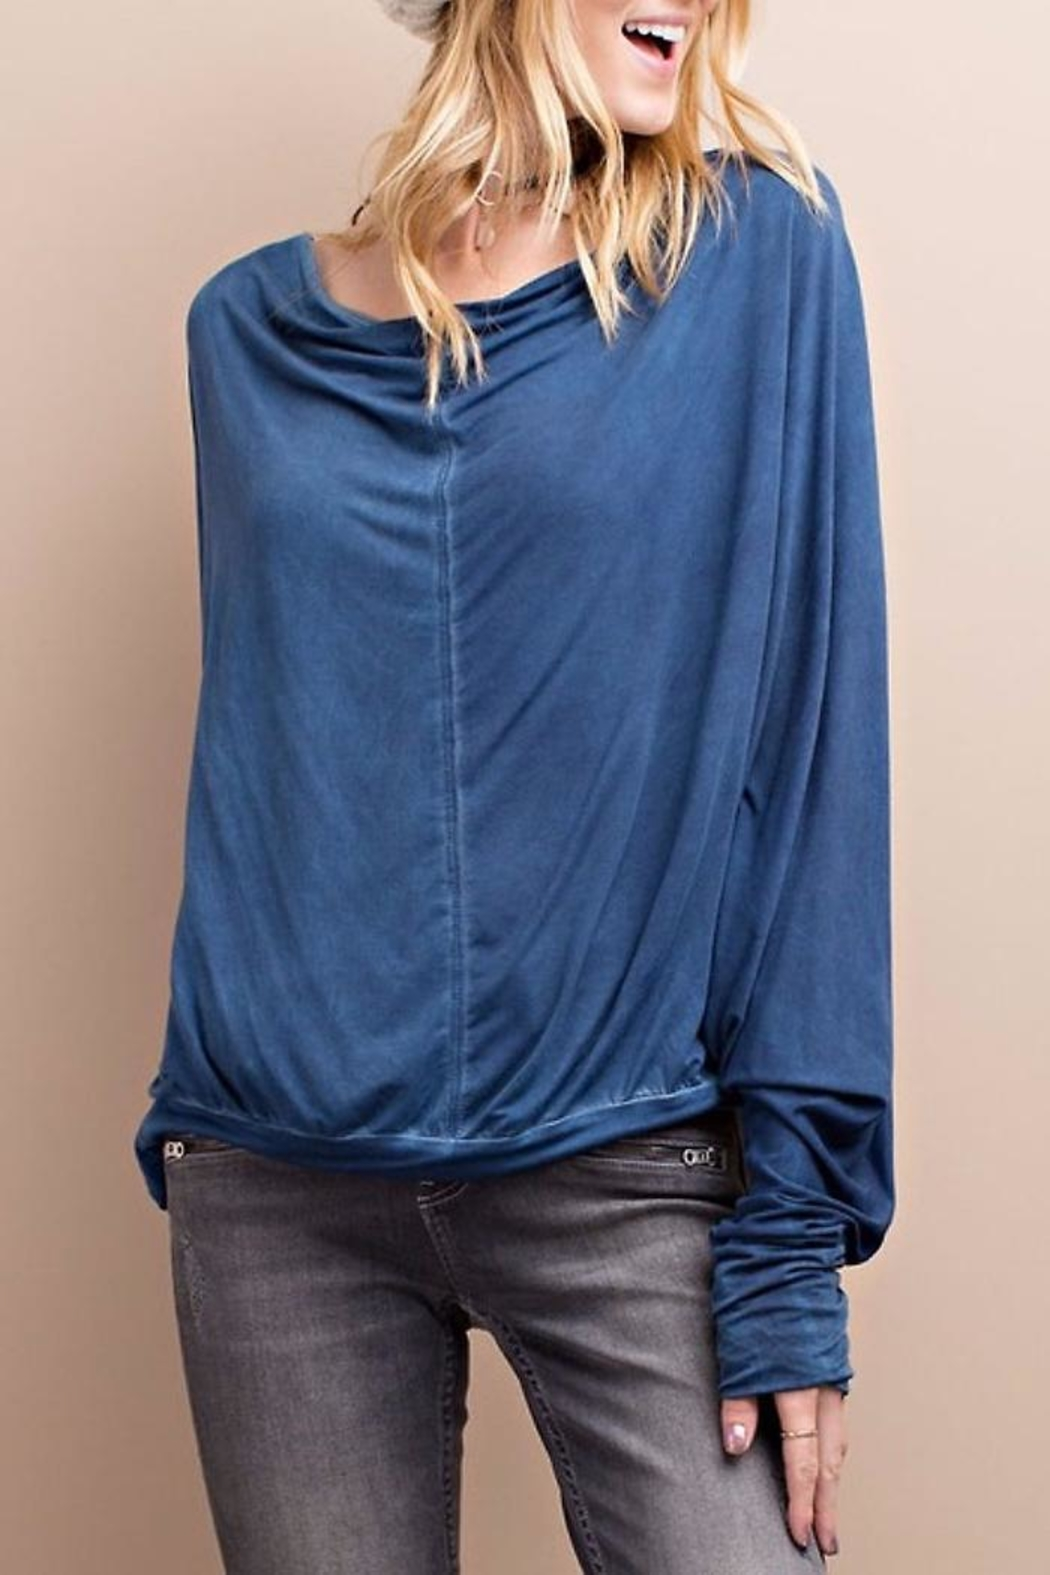 People Outfitter Nightingale Top - Front Full Image